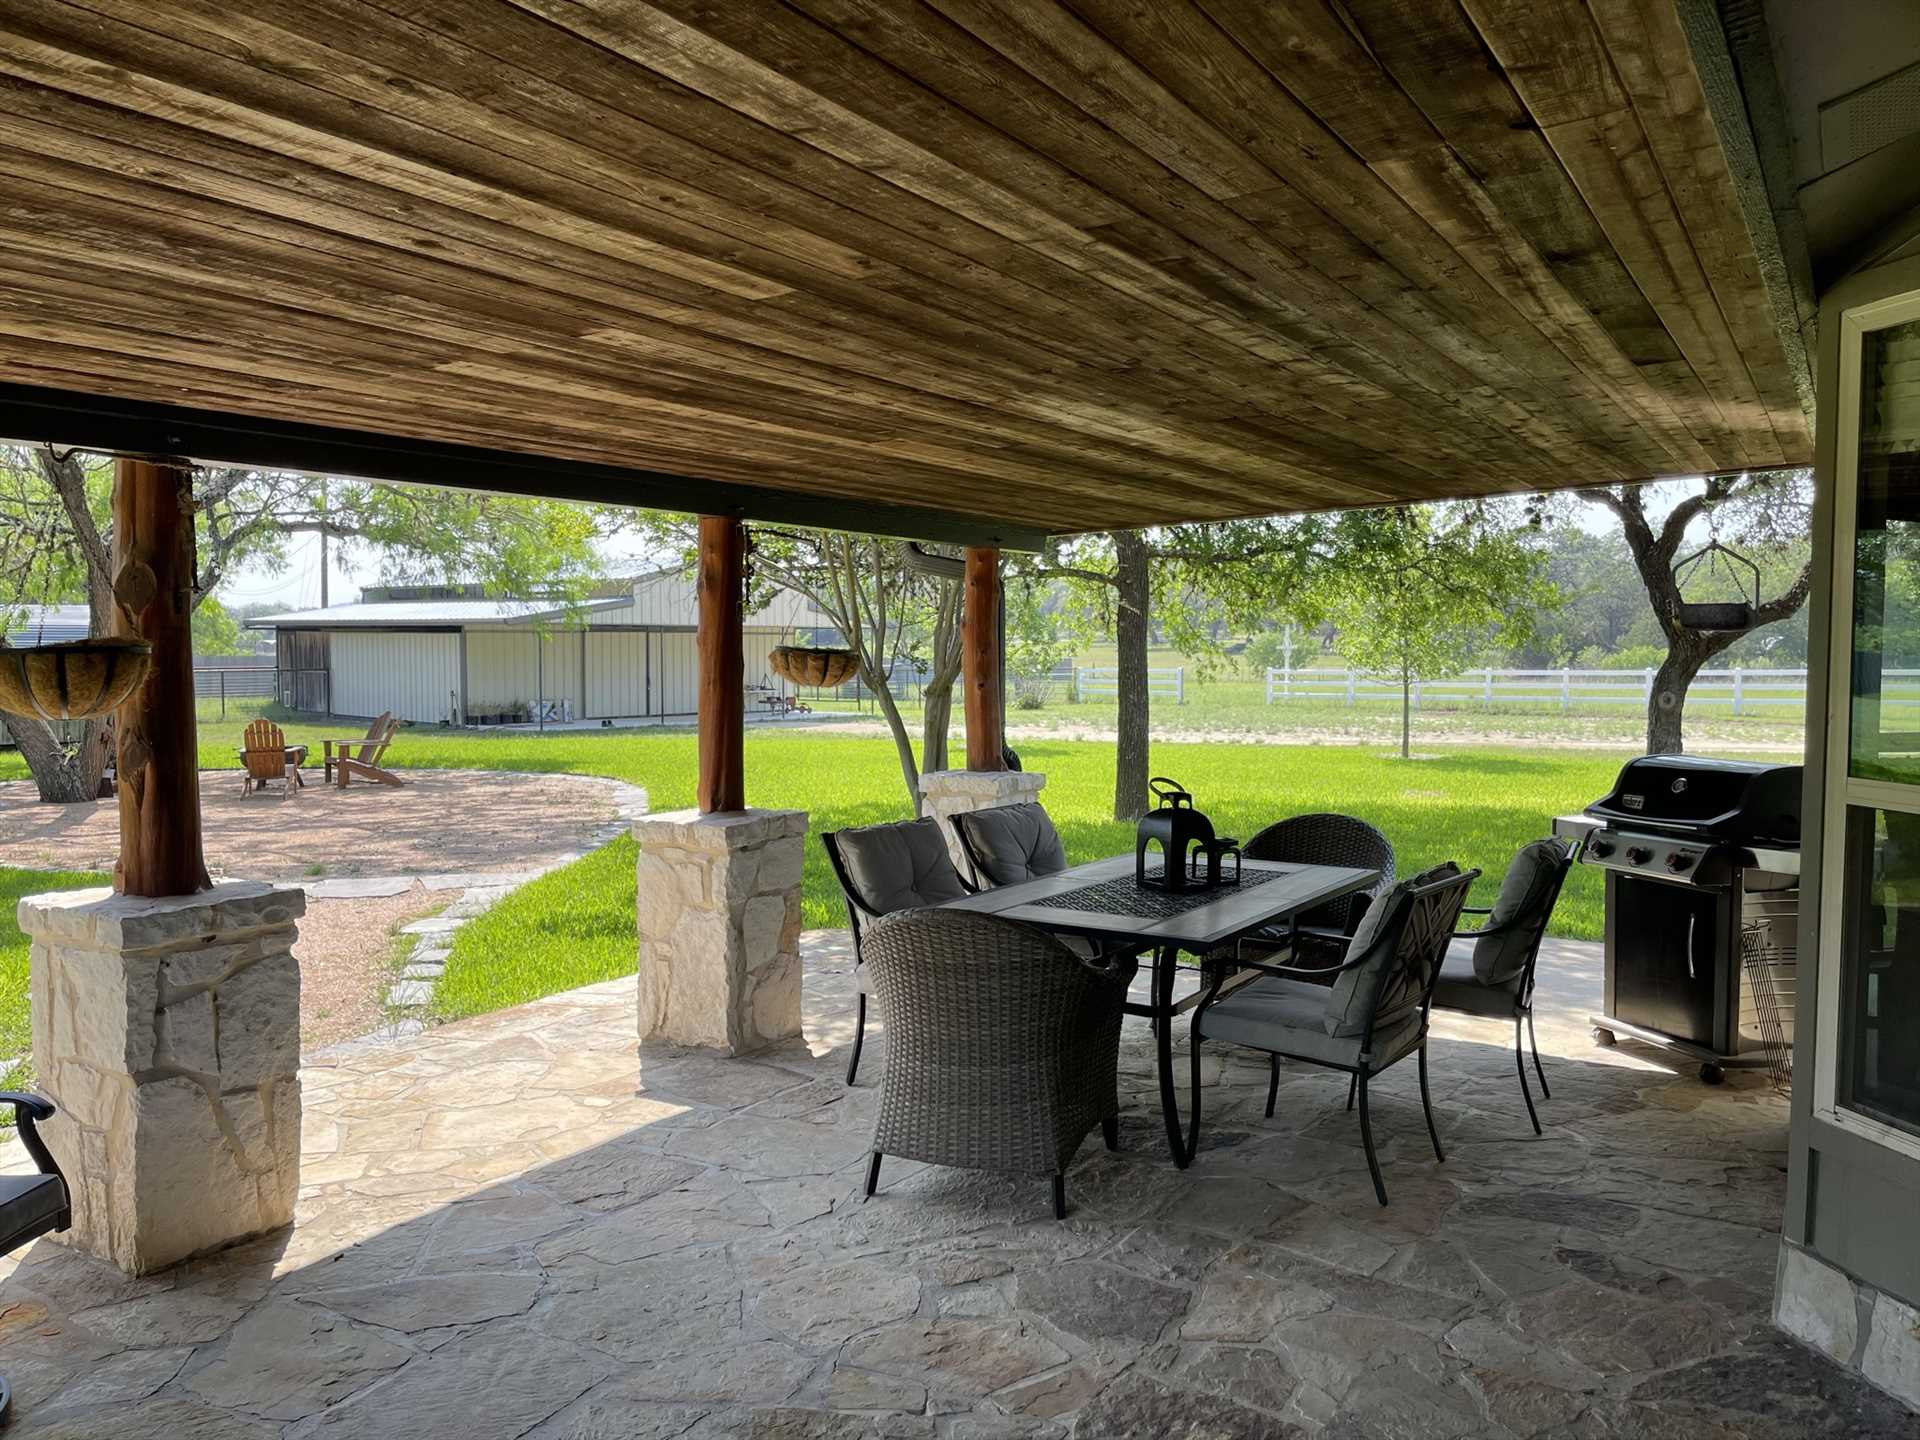 With a gas grill and generous outdoor dining space, all the ingredients are on hand for a fresh-air BBQ feast.